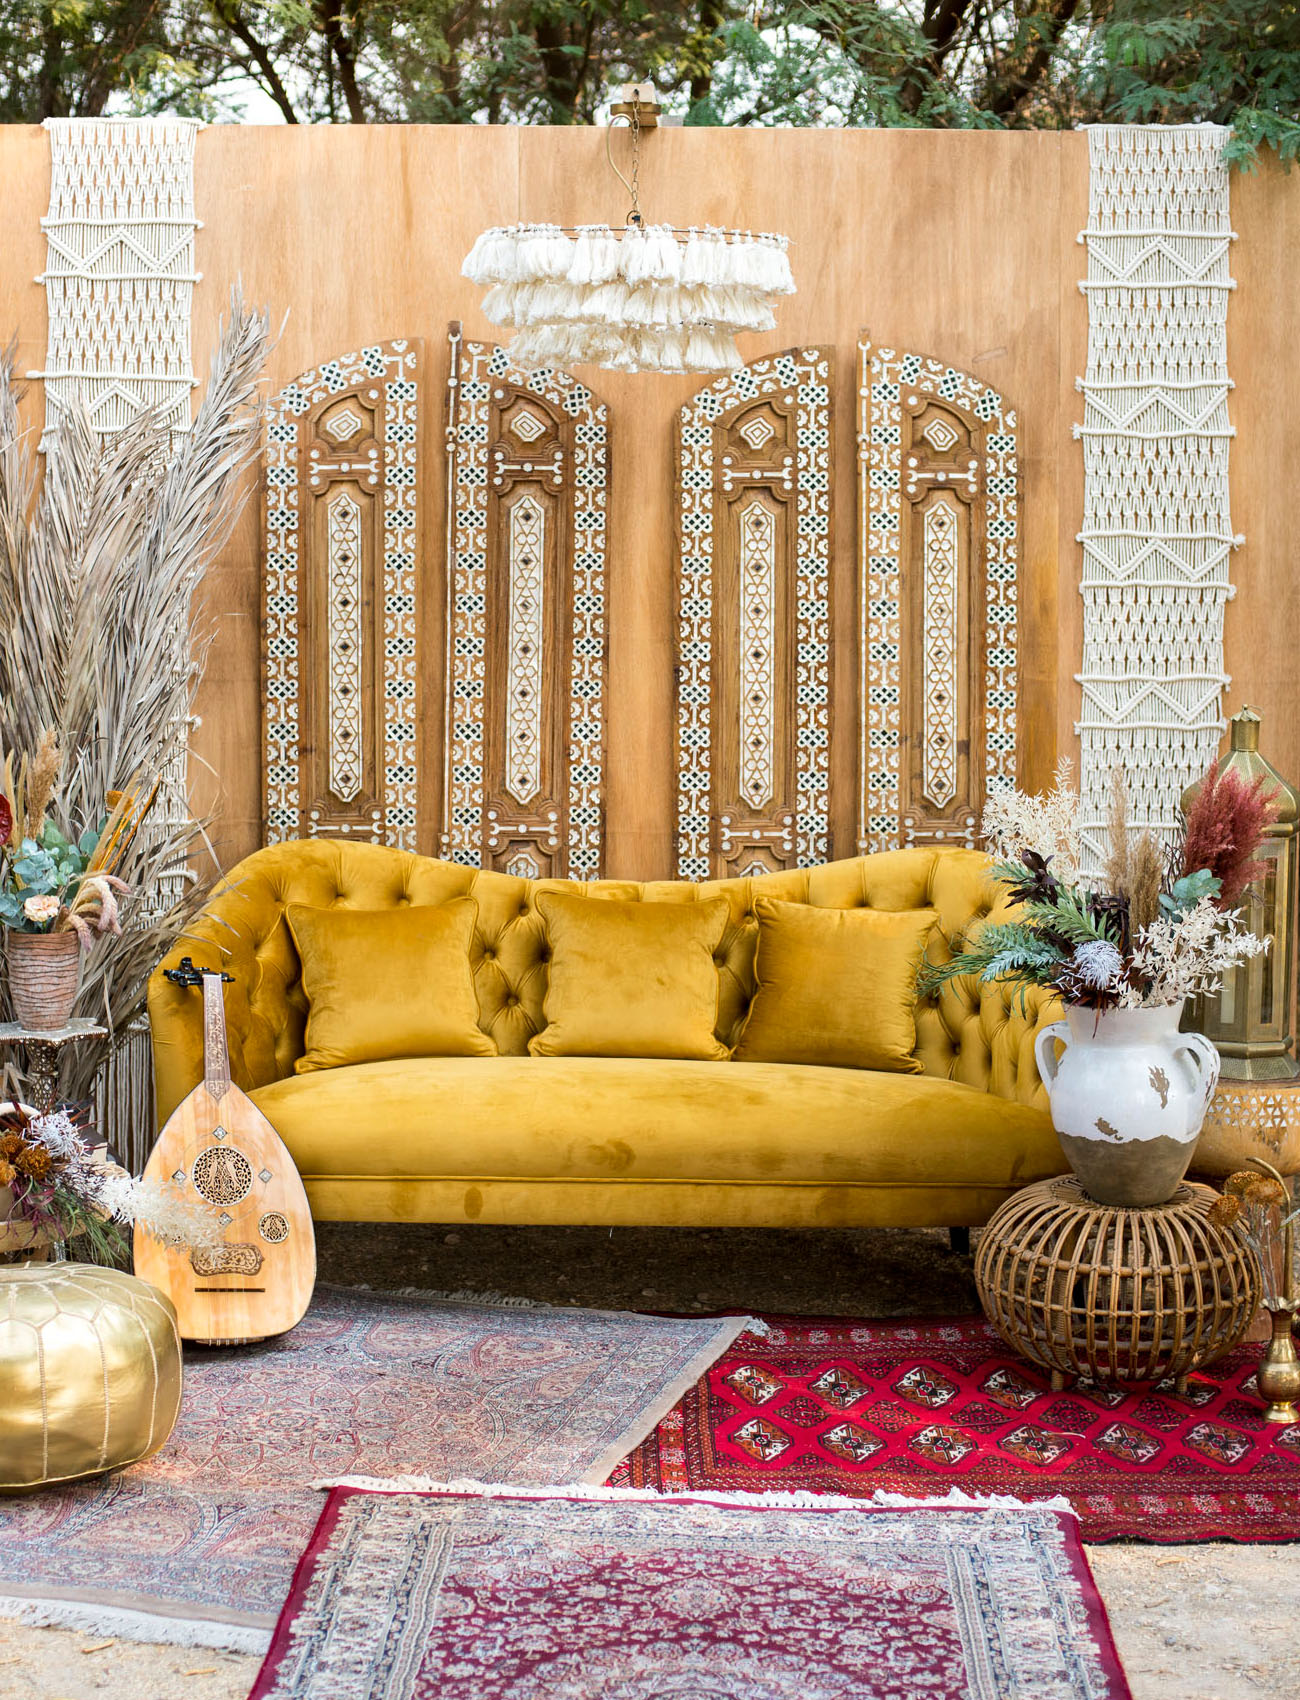 The lounge was truly boho, in burgundy and mustard shades, boho rugs and macrame and tassels